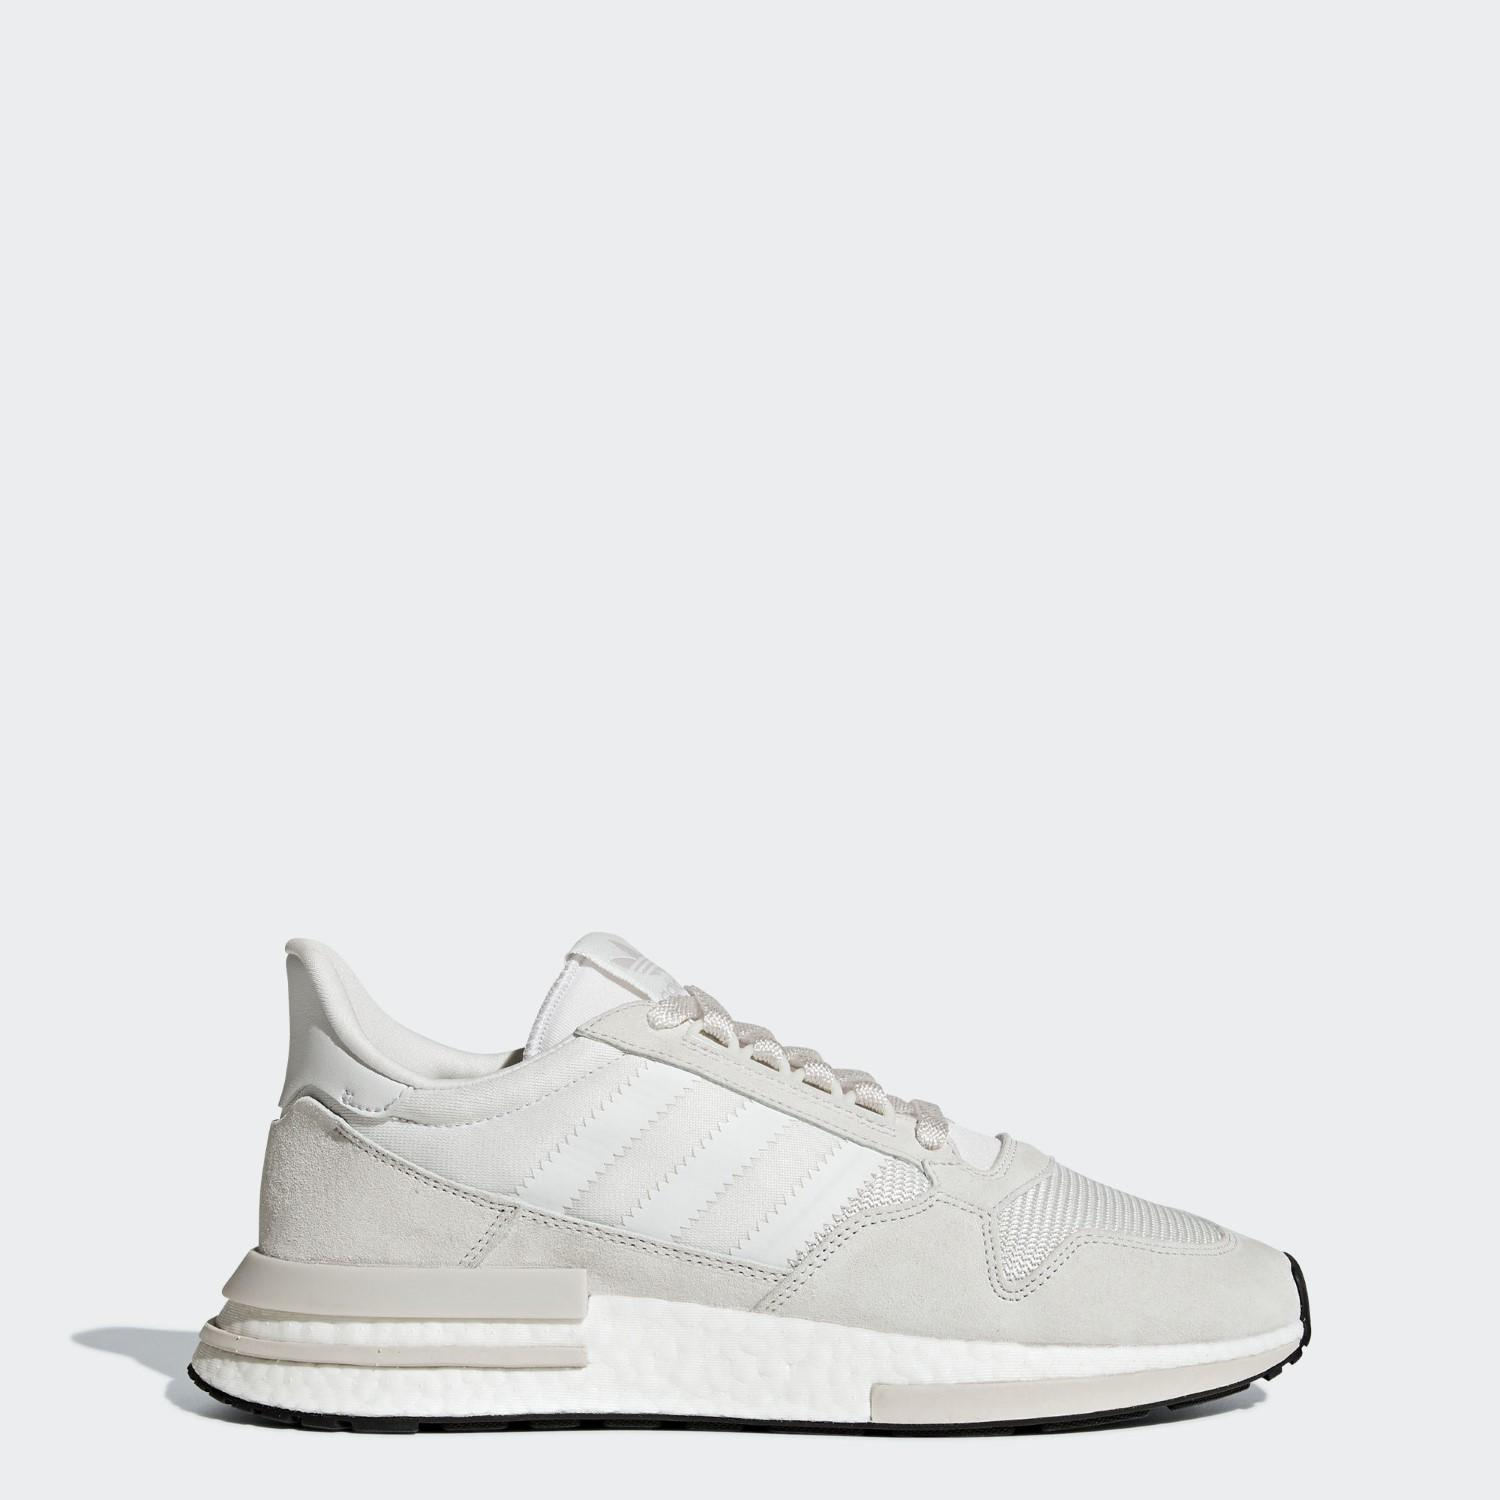 766fc223182fc Lyst - adidas Zx 500 Rm Shoes in White for Men